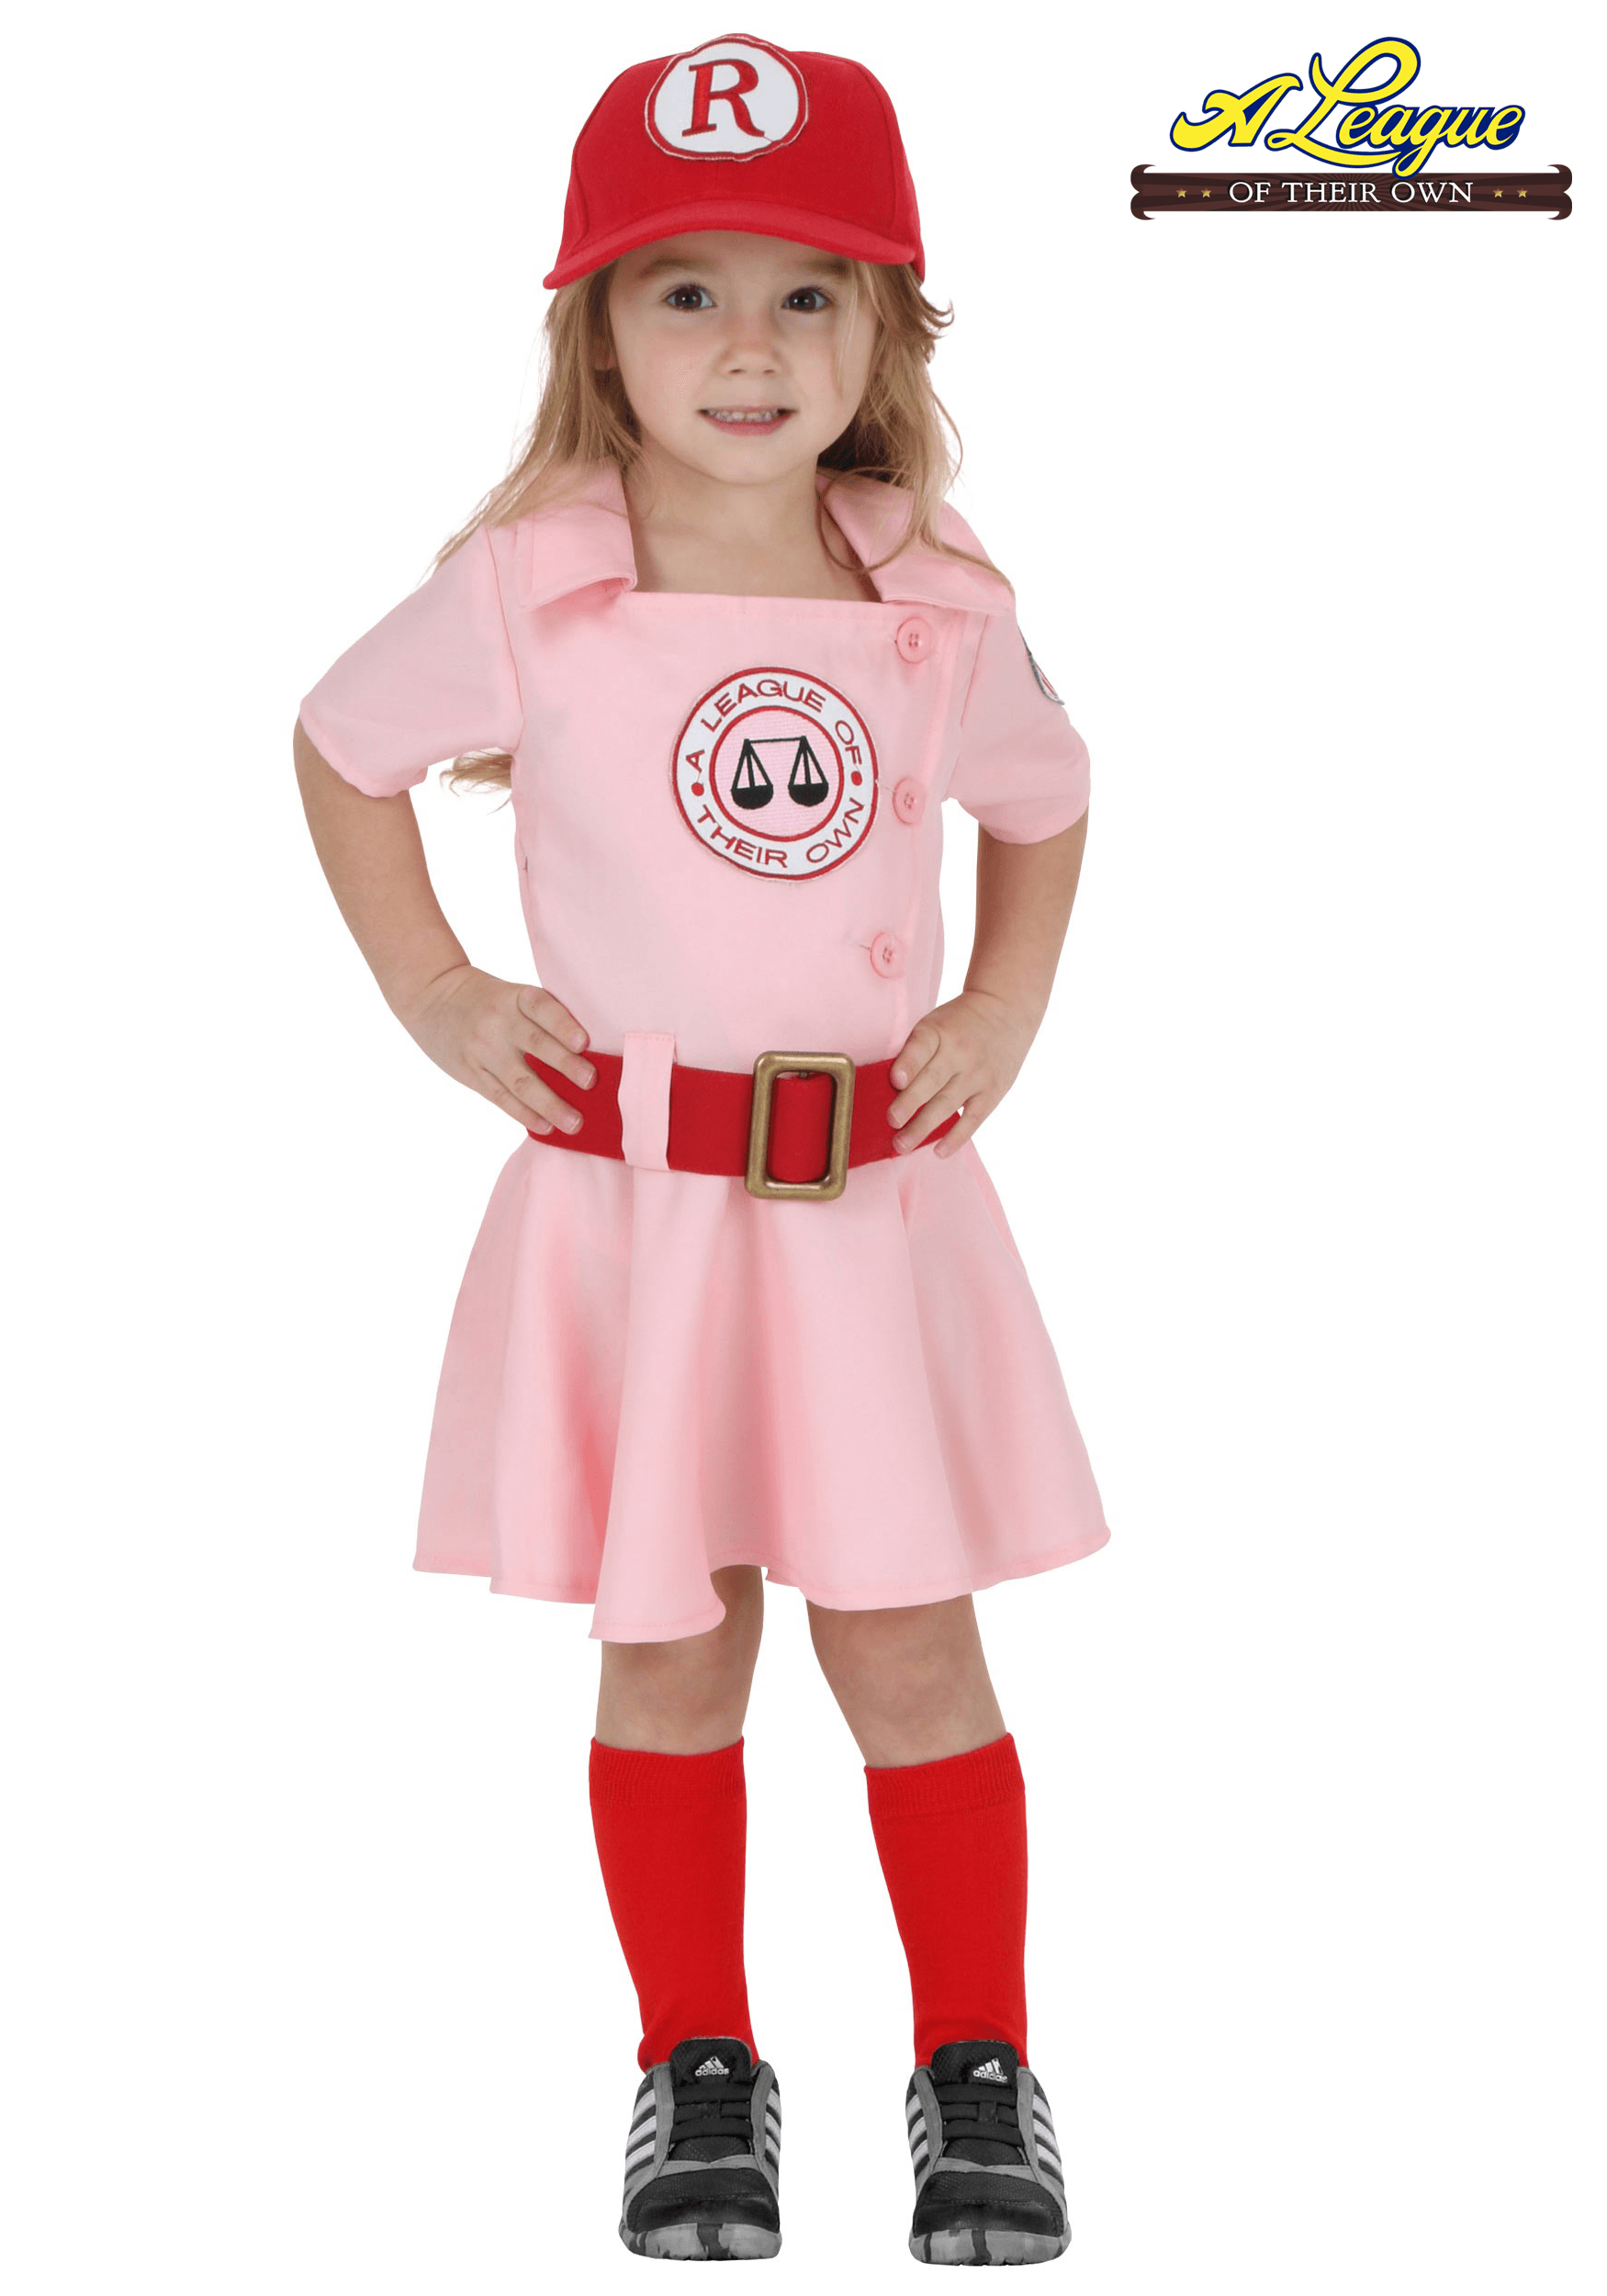 toddler a league of their own dottie costume - Baseball Halloween Costume For Girls